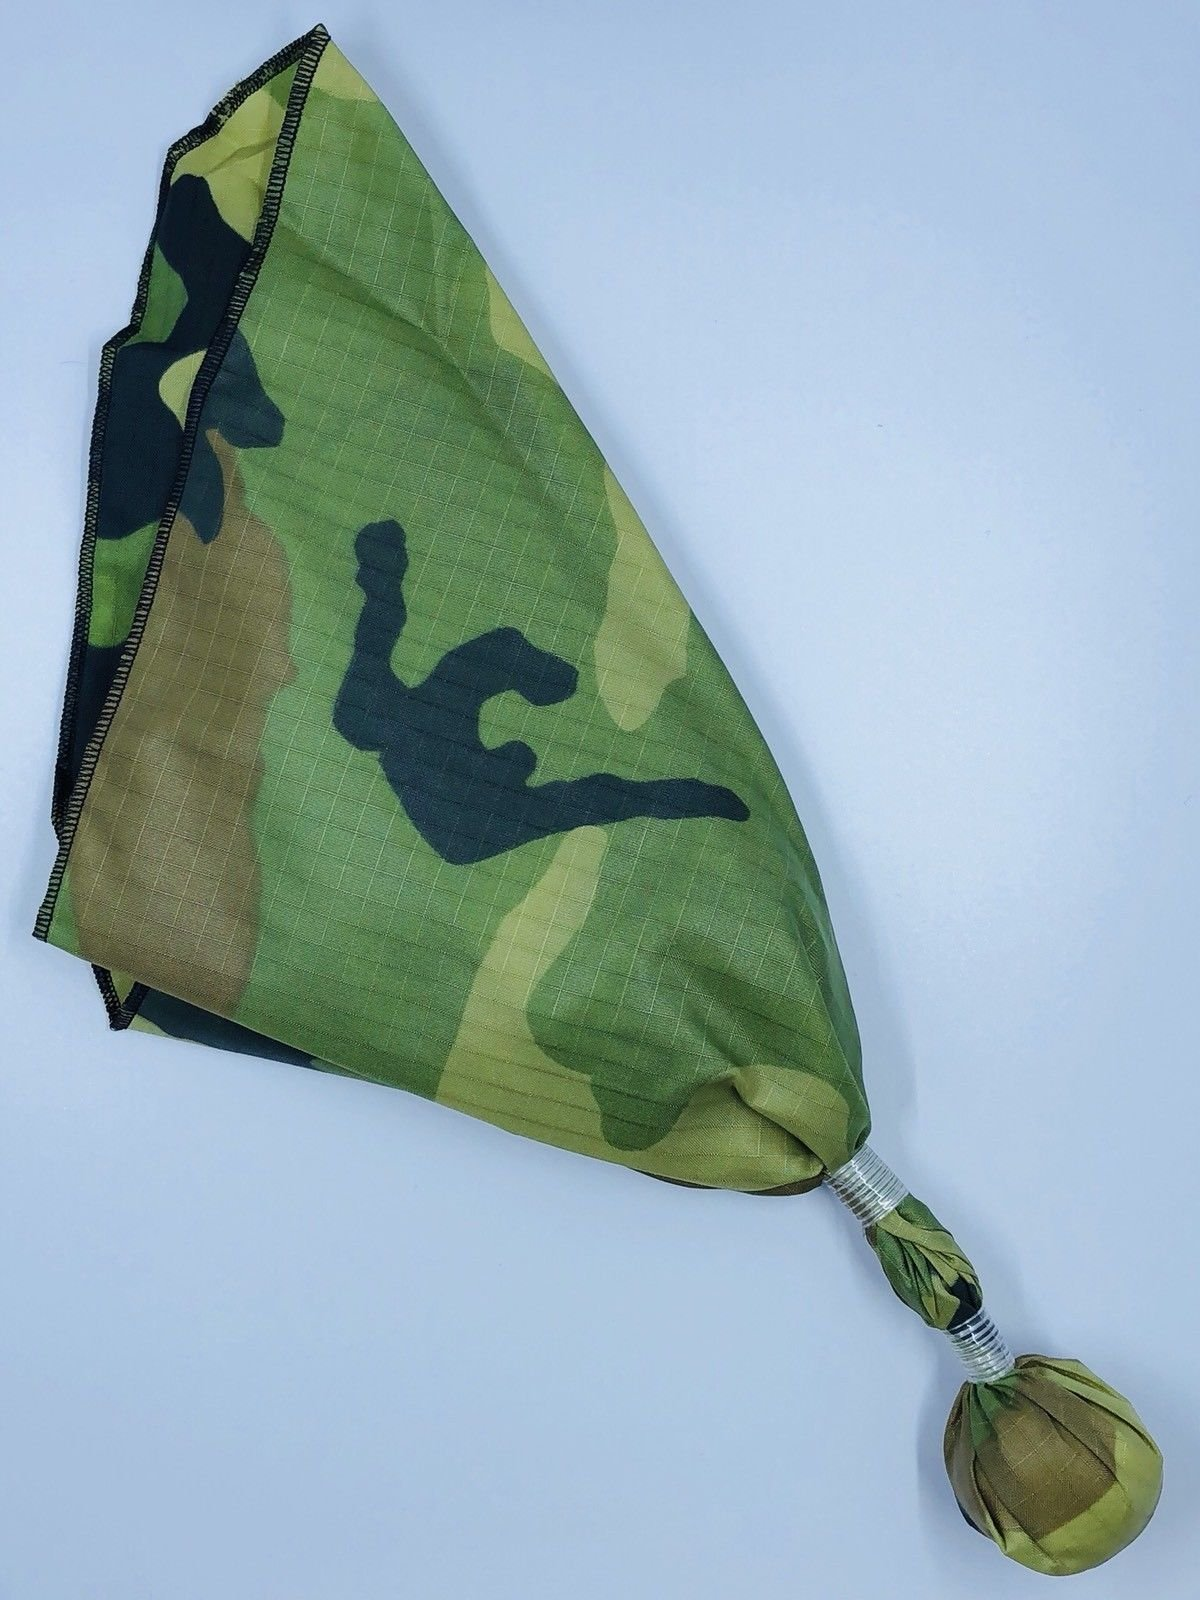 PROFESSIONAL NFL Football Penalty Flag Camo 16'' Double Band Waterproof Camo Ball Ribstop Nylon Flags N' Bags MADE IN USA Patent High School College Lacrosse Official Referee Camouflage